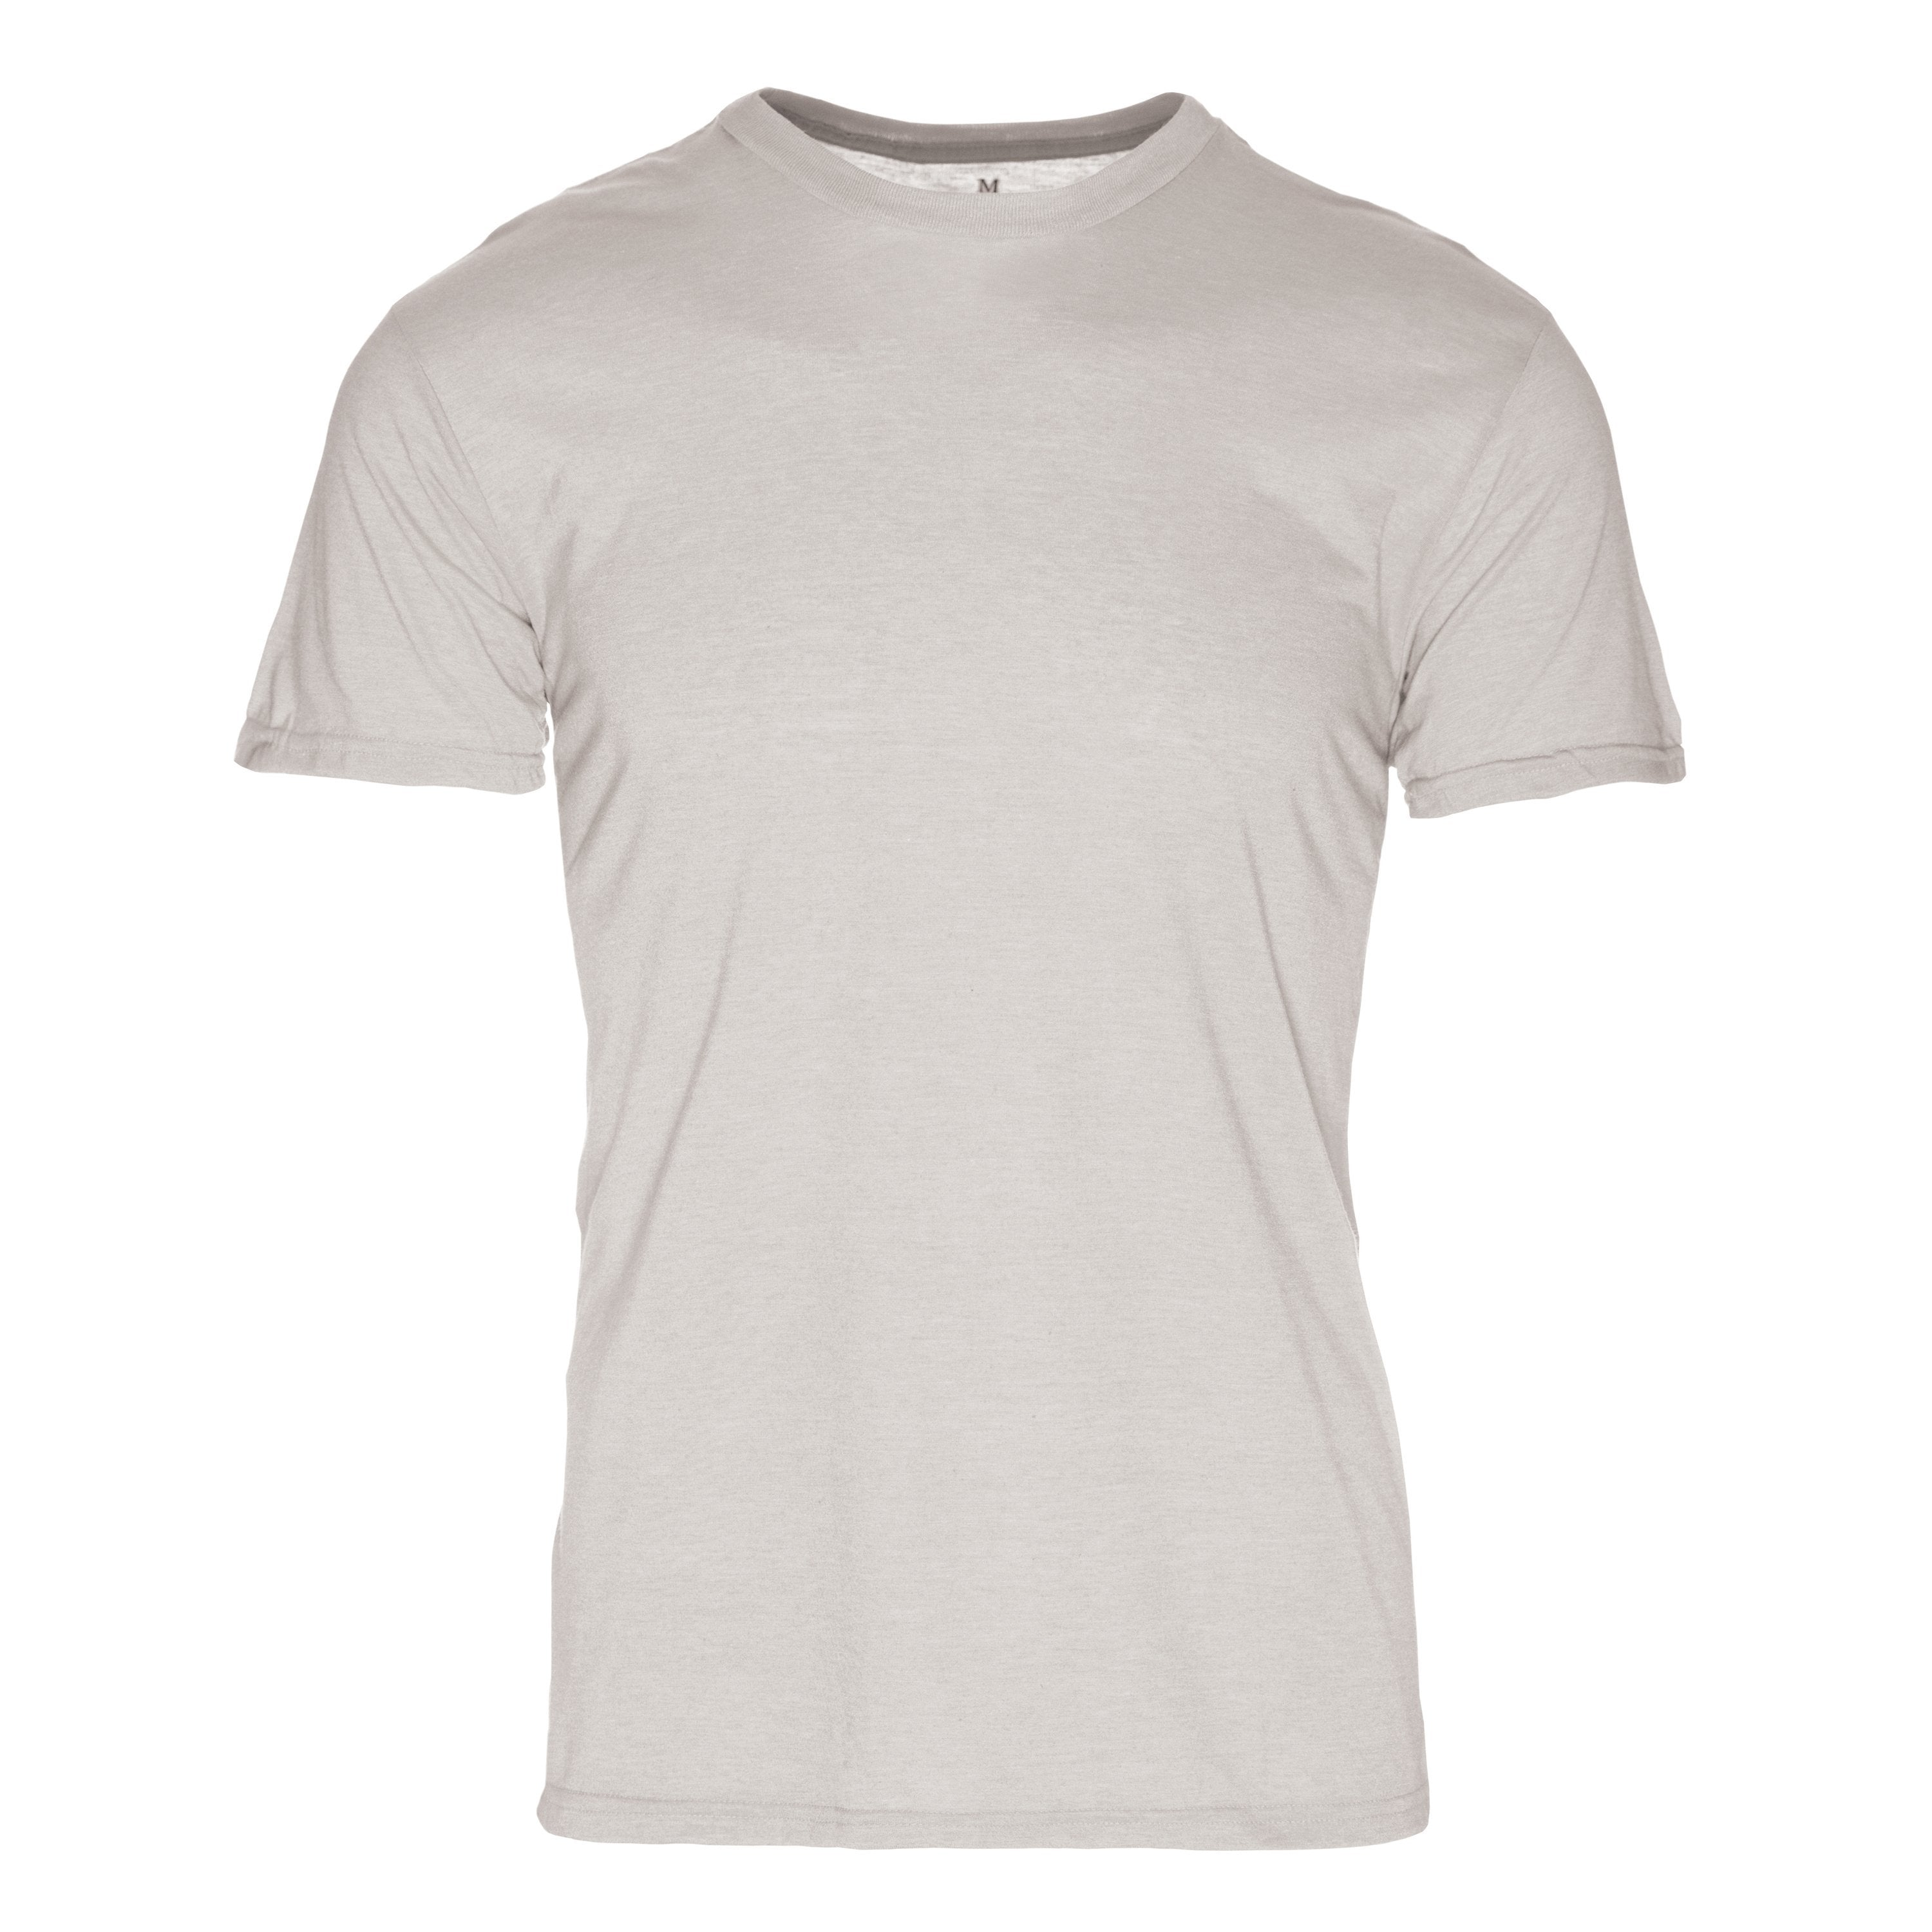 RM100SR Eco REPREVE® Recycled Triblend Crew T-Shirt - Silver